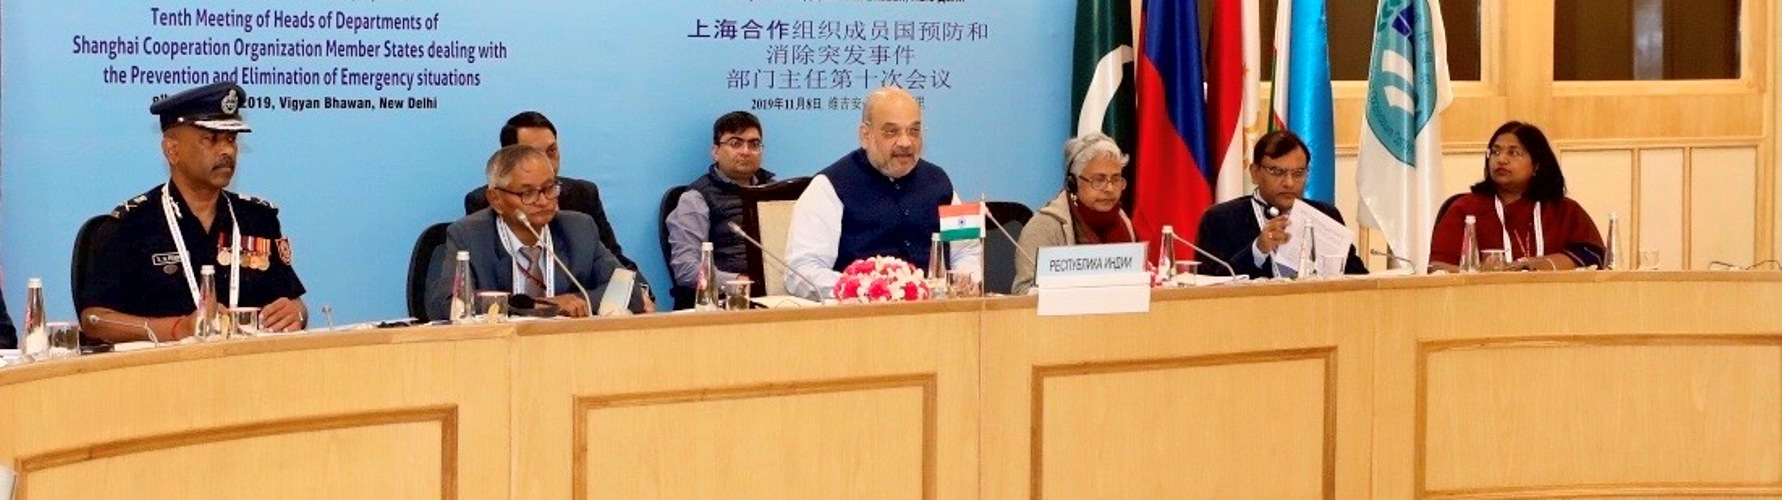 Union Home Minister Shri Amit Shah chairing the Tenth Meeting of Heads of Departments of SCO Member States dealing with prevention and elimination of emergency situations at New Delhi on November 9, 2019